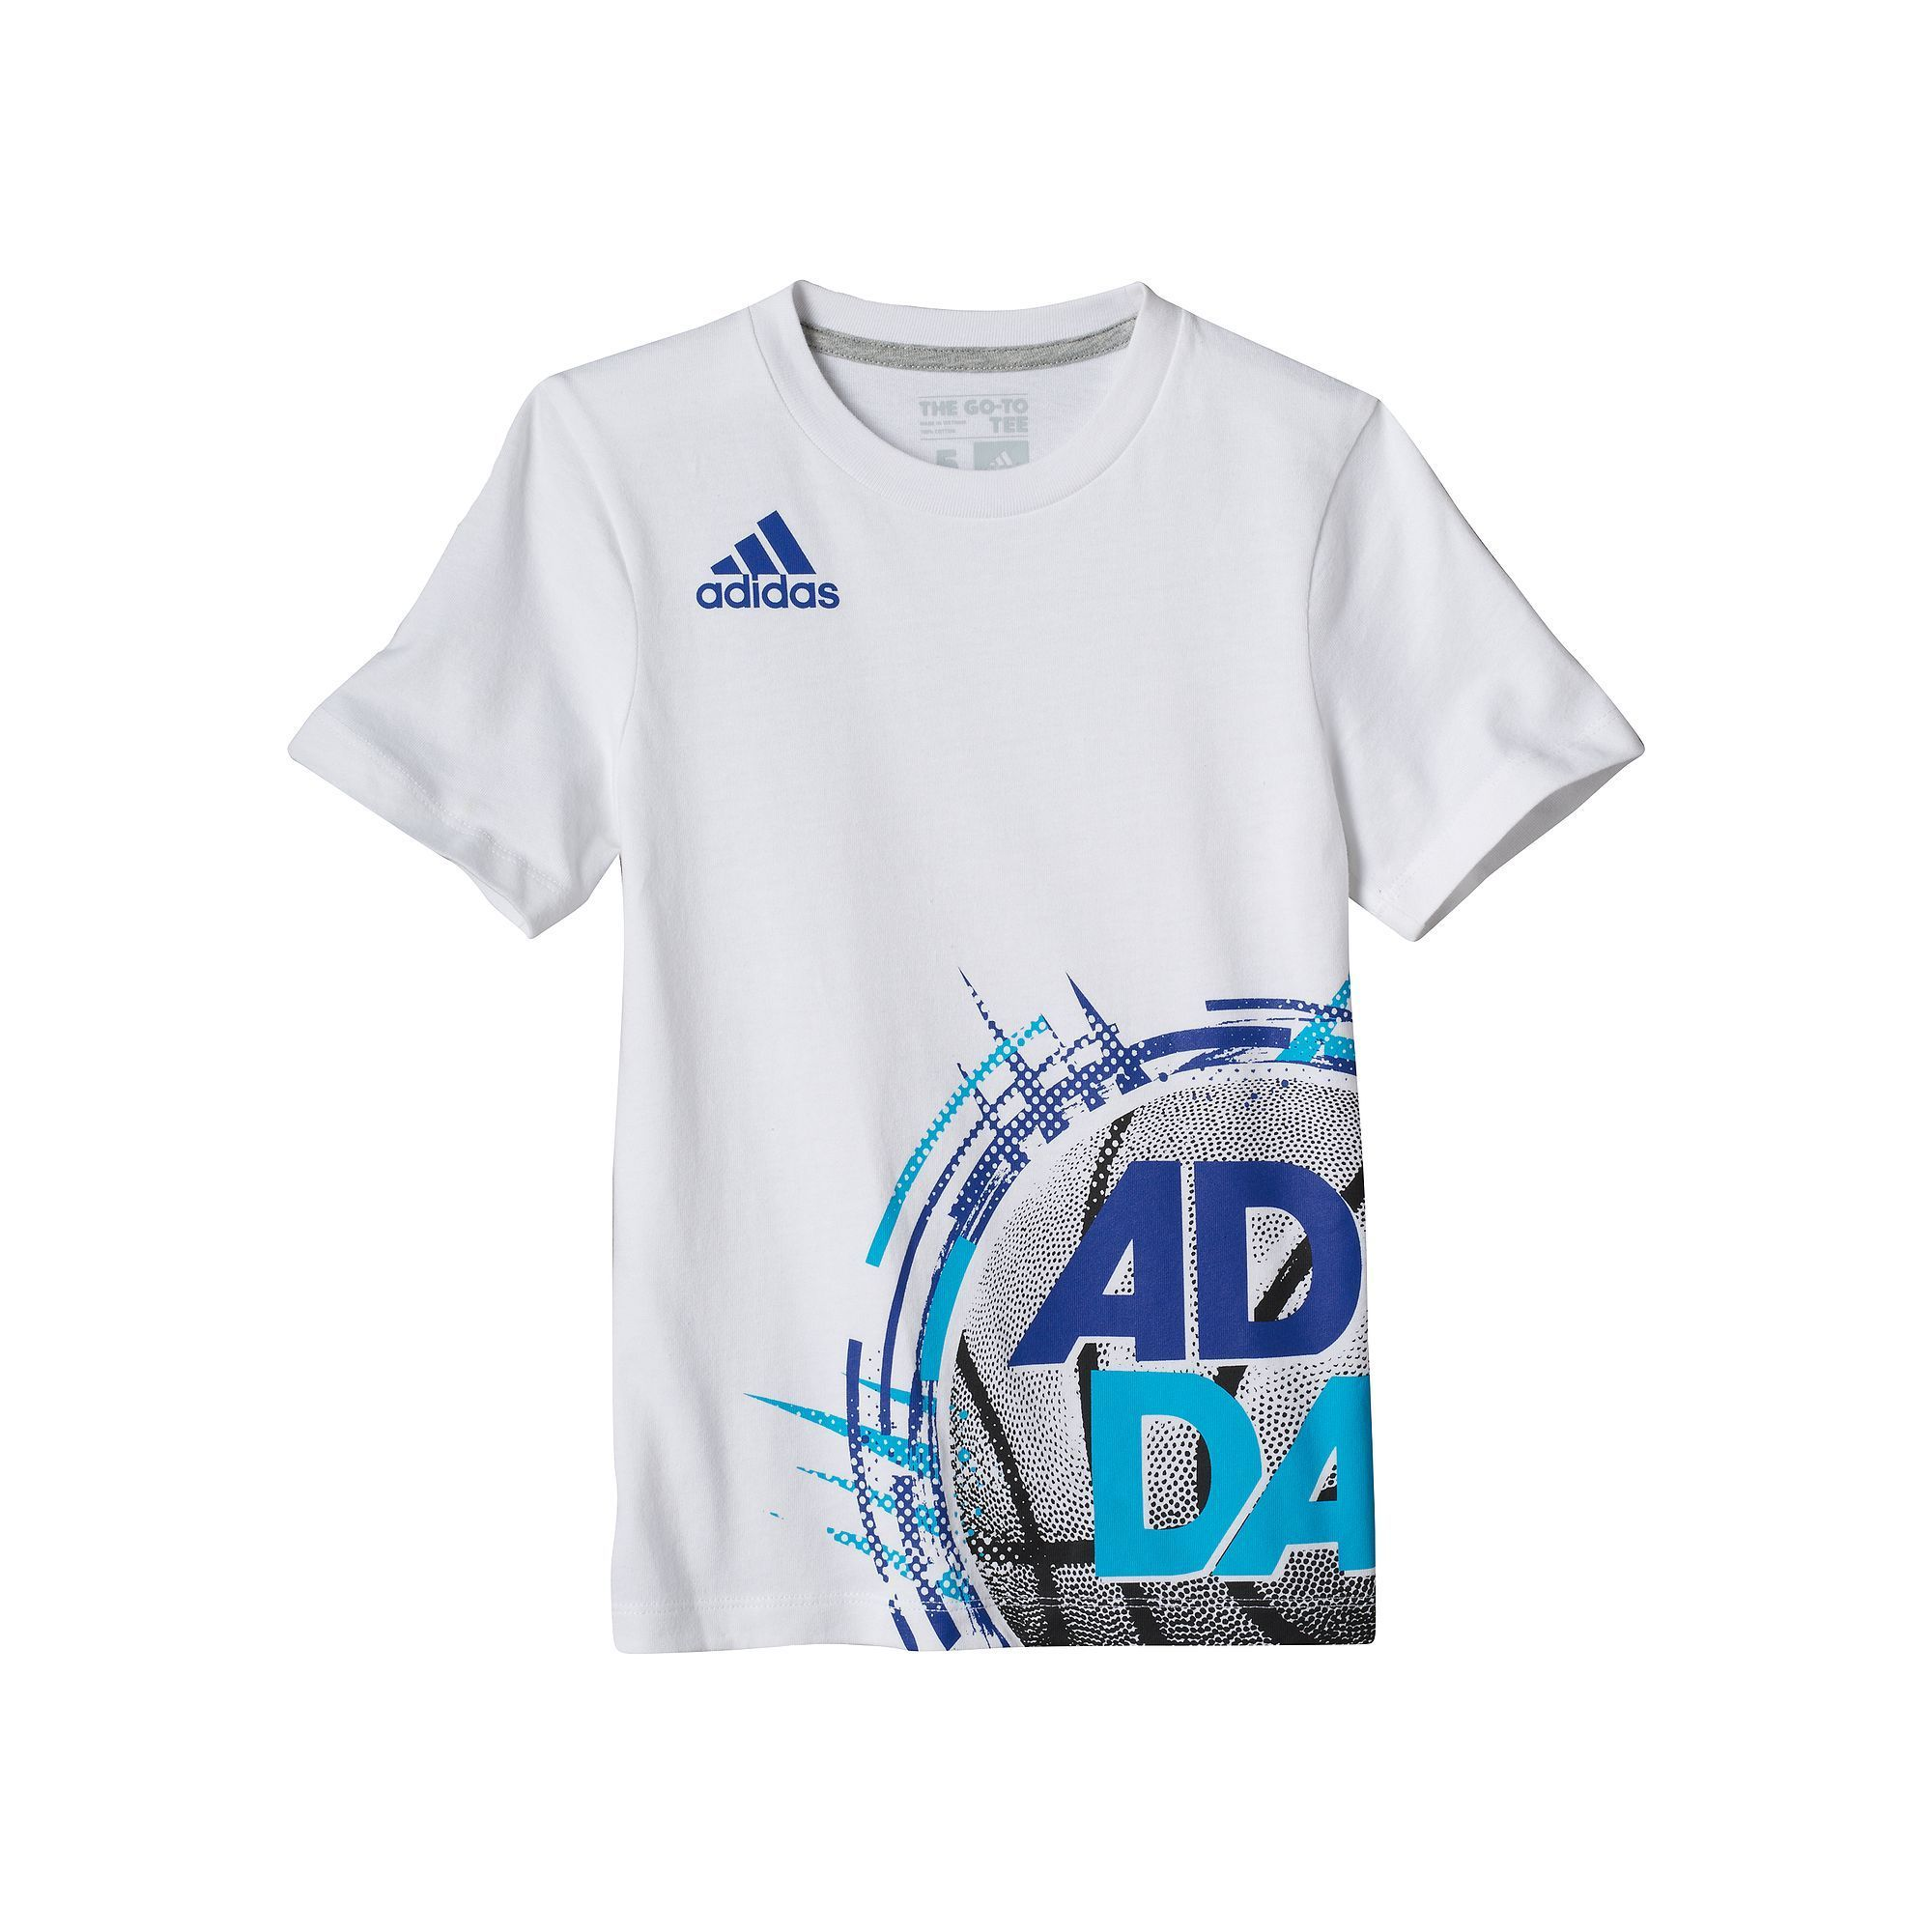 Boys 4-7x Adidas Sports Wrap-Around Graphic Tee, Boy's, Size: